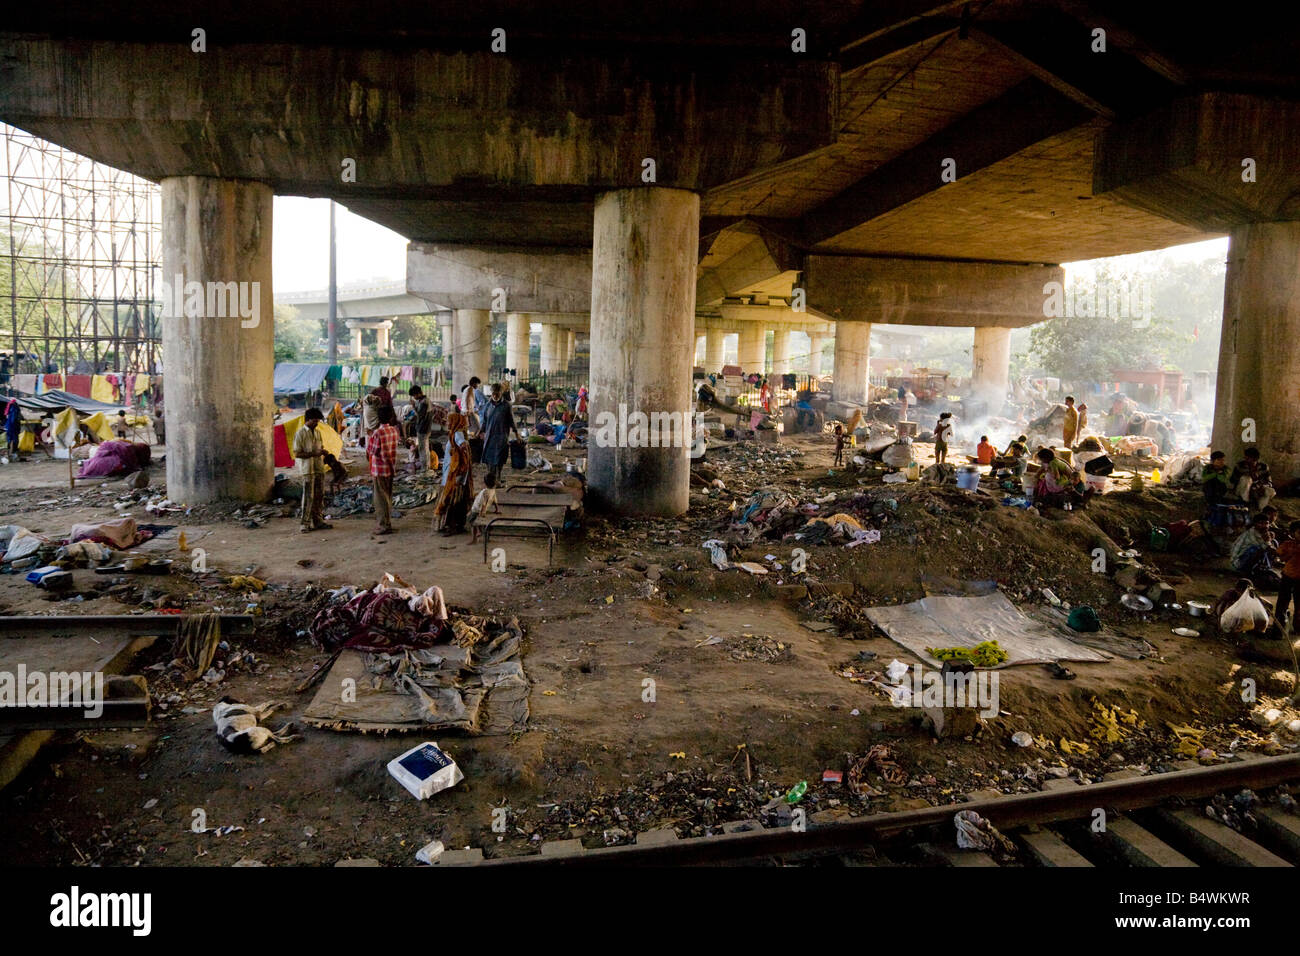 Crowds of people living in slums under the bridge by the Delhi to Bharatpur railway line, New Delhi, India - Stock Image